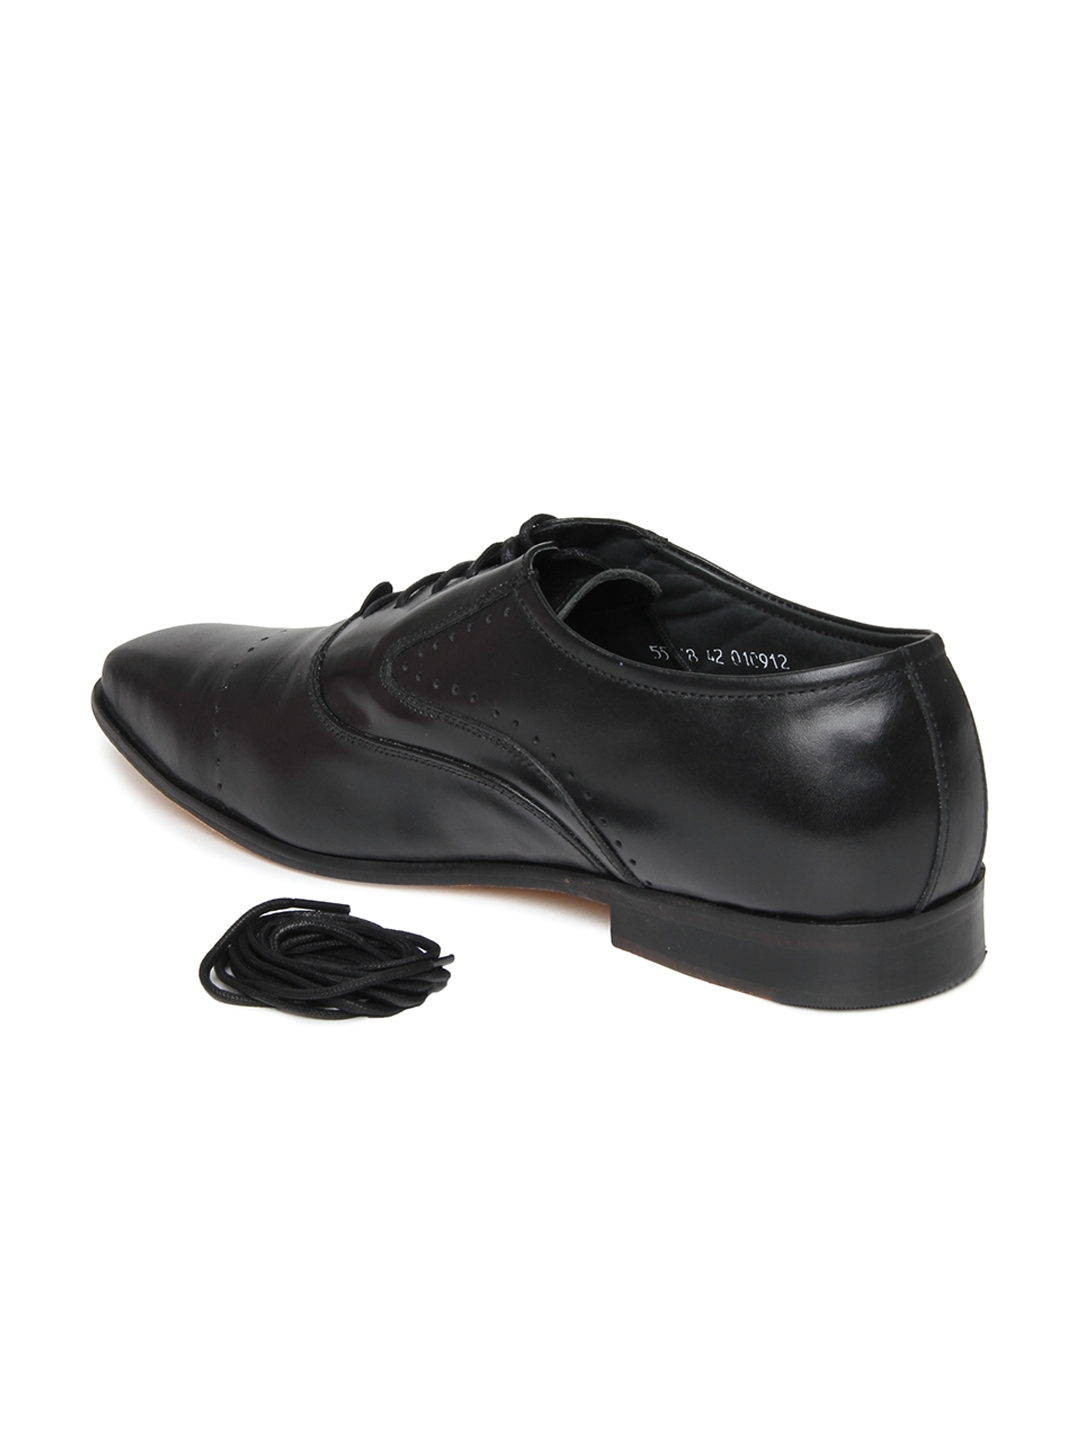 myntra engross black leather formal shoes 287693 buy